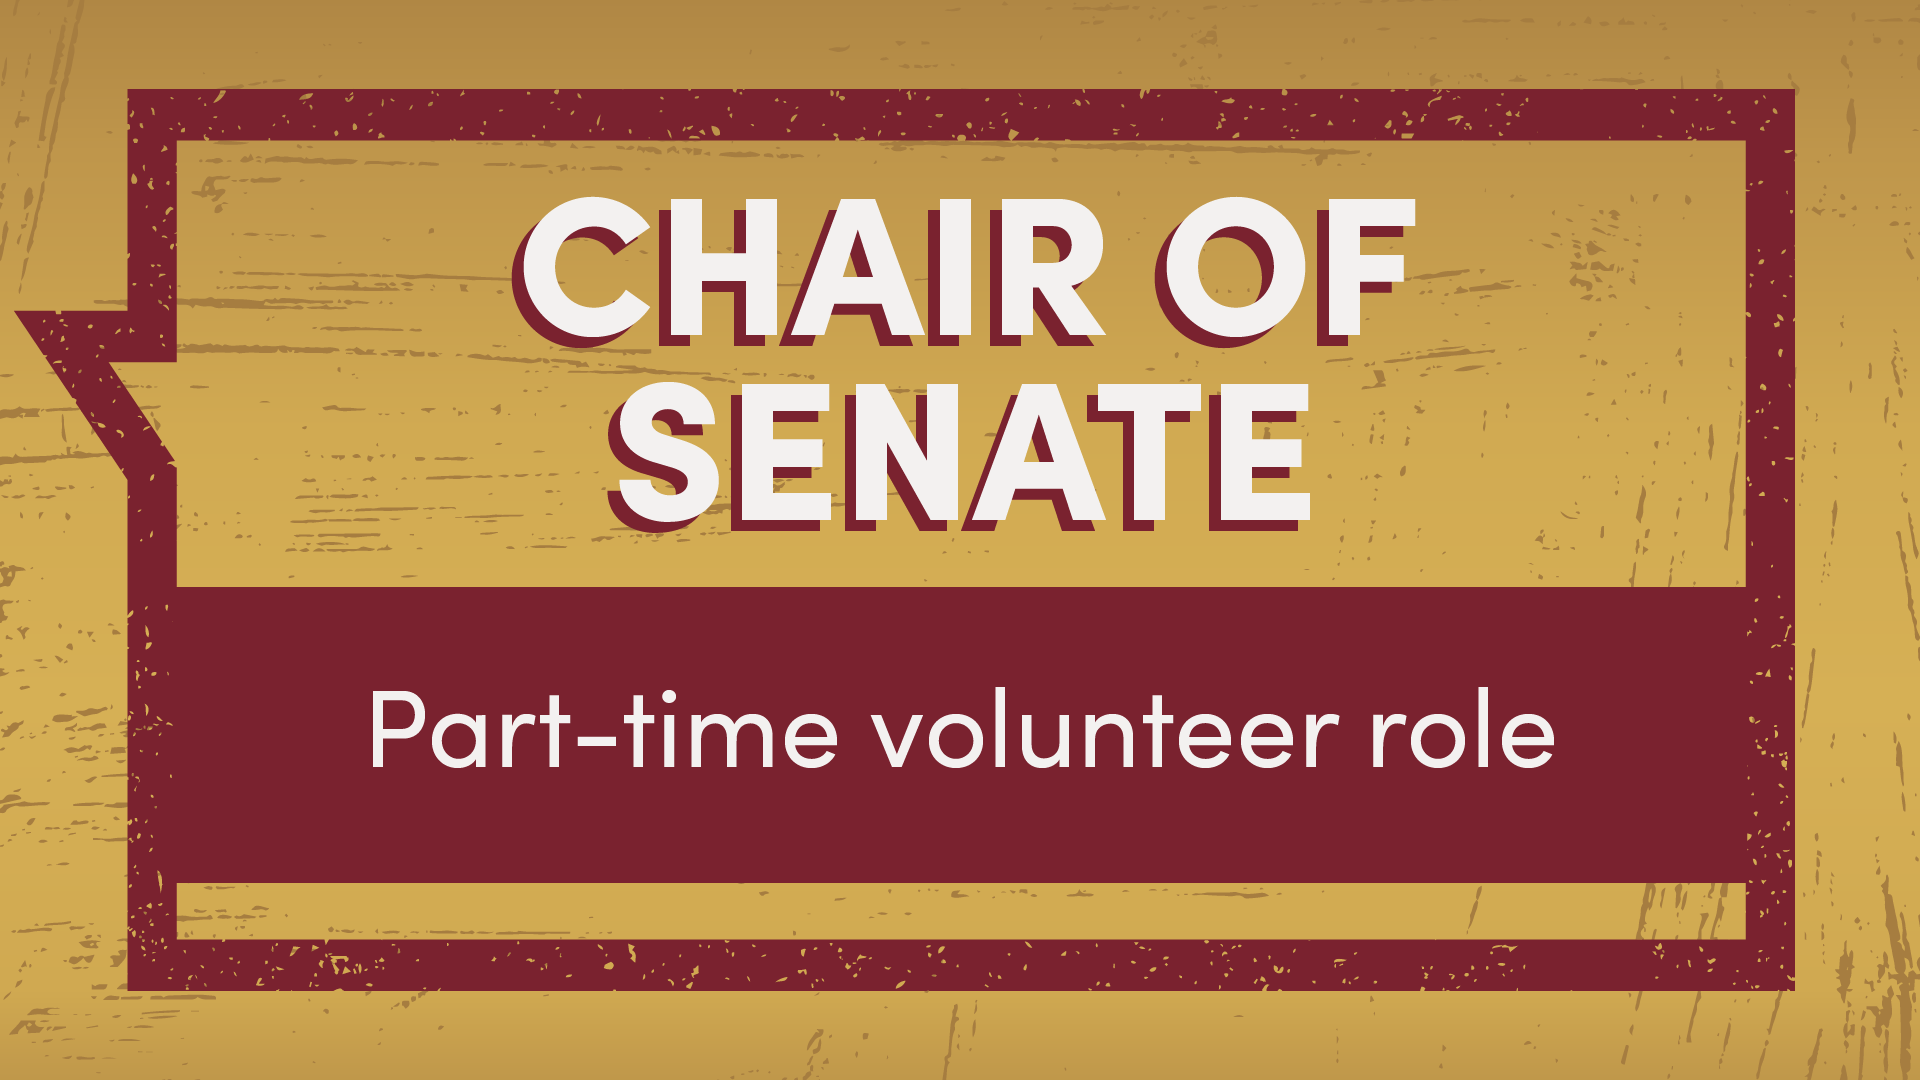 Chair of Senate part-time volunteer role